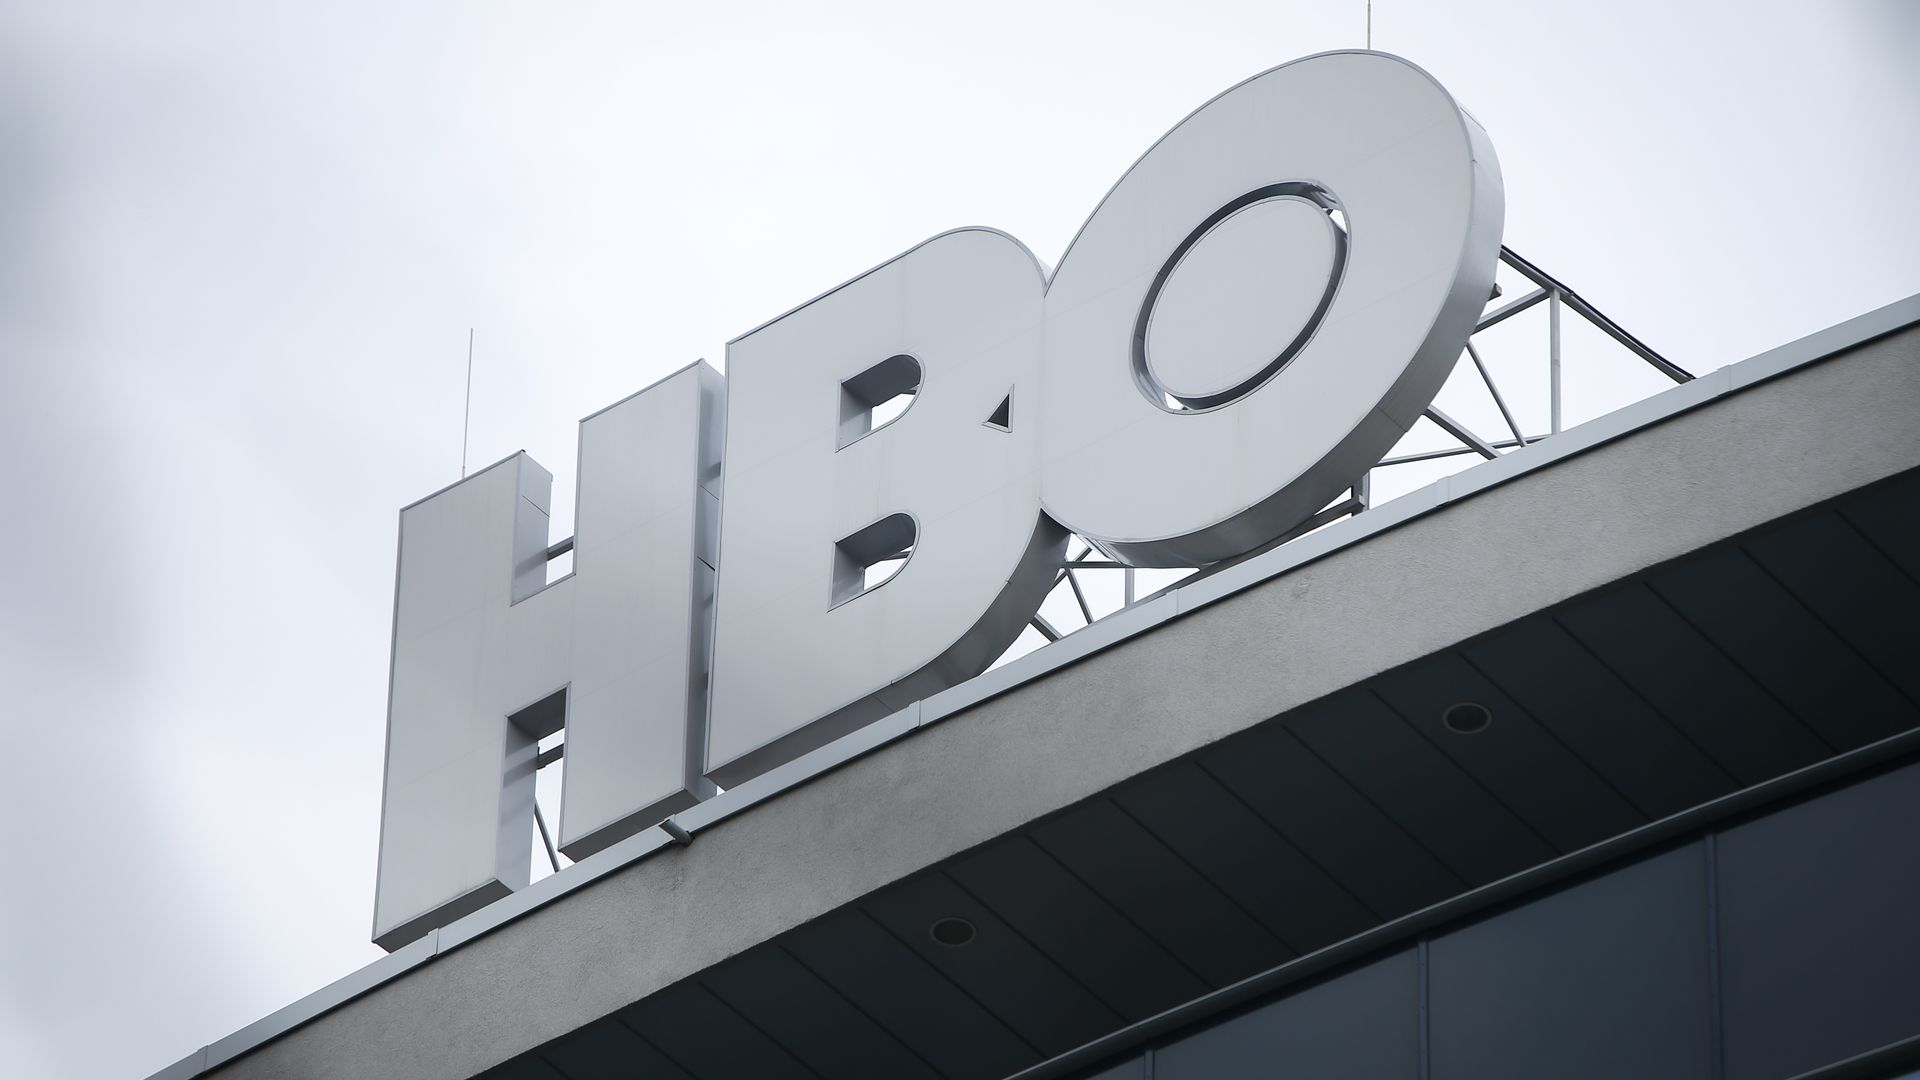 An HBO logo atop a building in Bucharest.